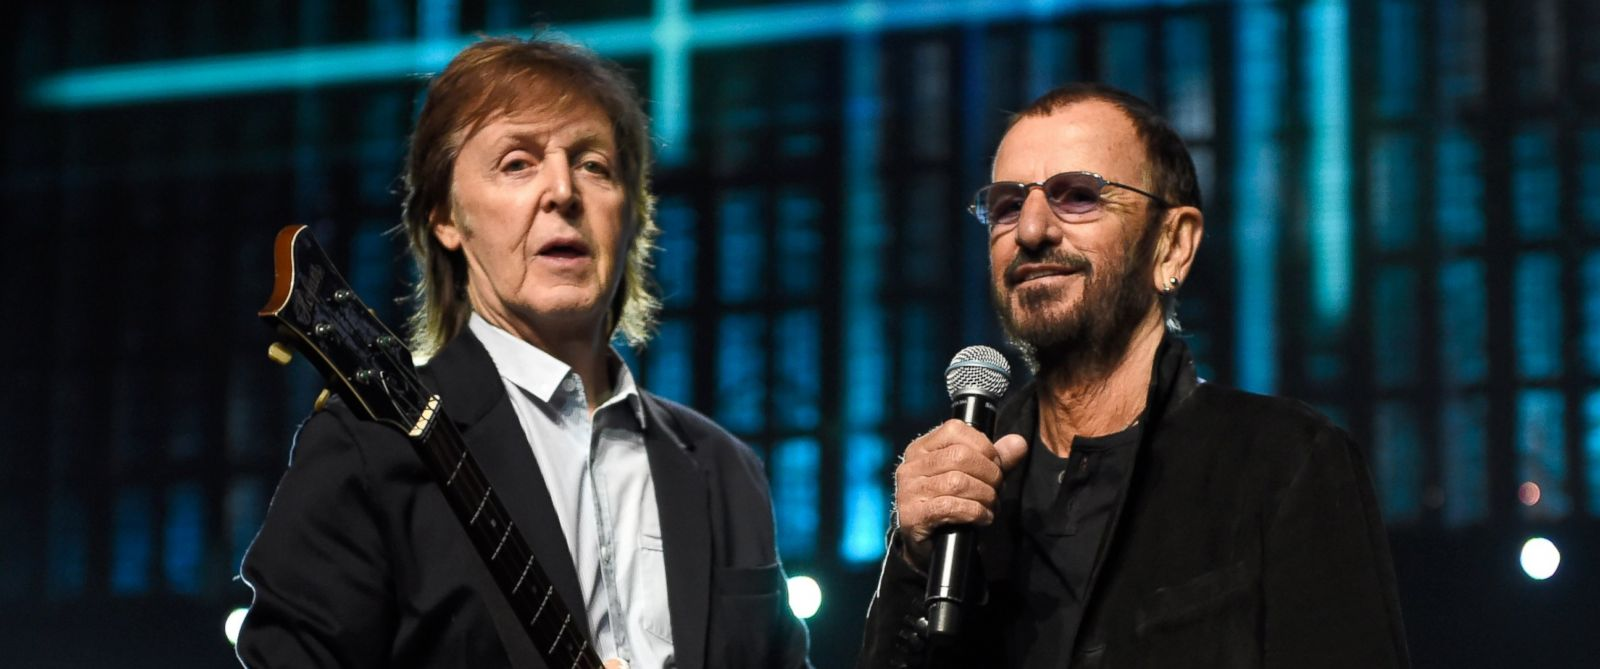 PHOTO: Paul McCartney and Ringo Starr during rehearsals for the 30th Annual Rock And Roll Hall Of Fame Induction Ceremony at Public Hall, on April 18, 2015, in Cleveland.